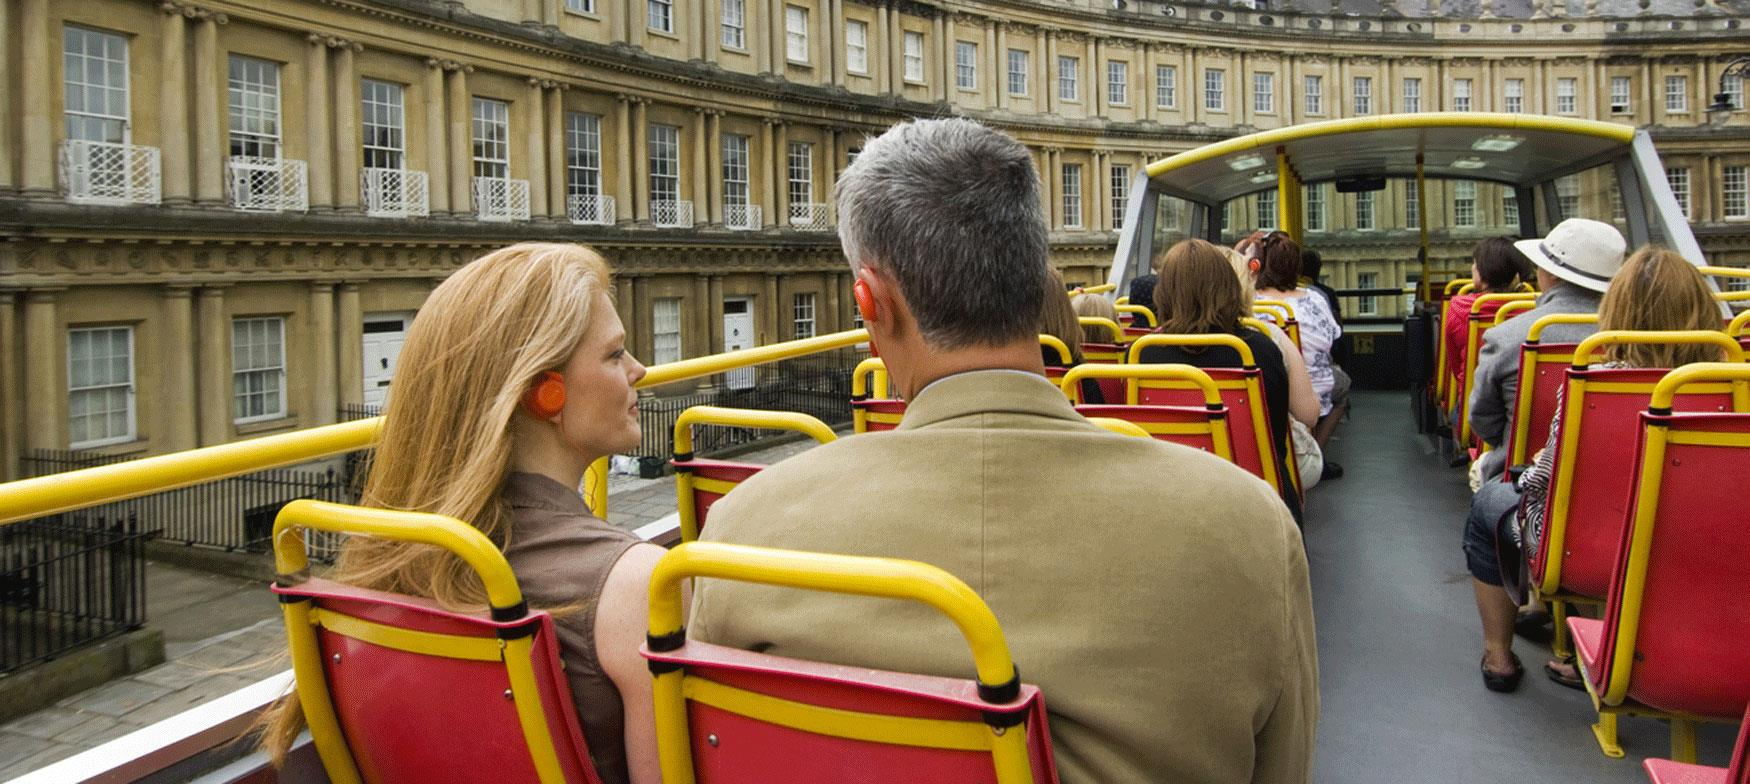 For the stories behind the views, take an open top bus tour